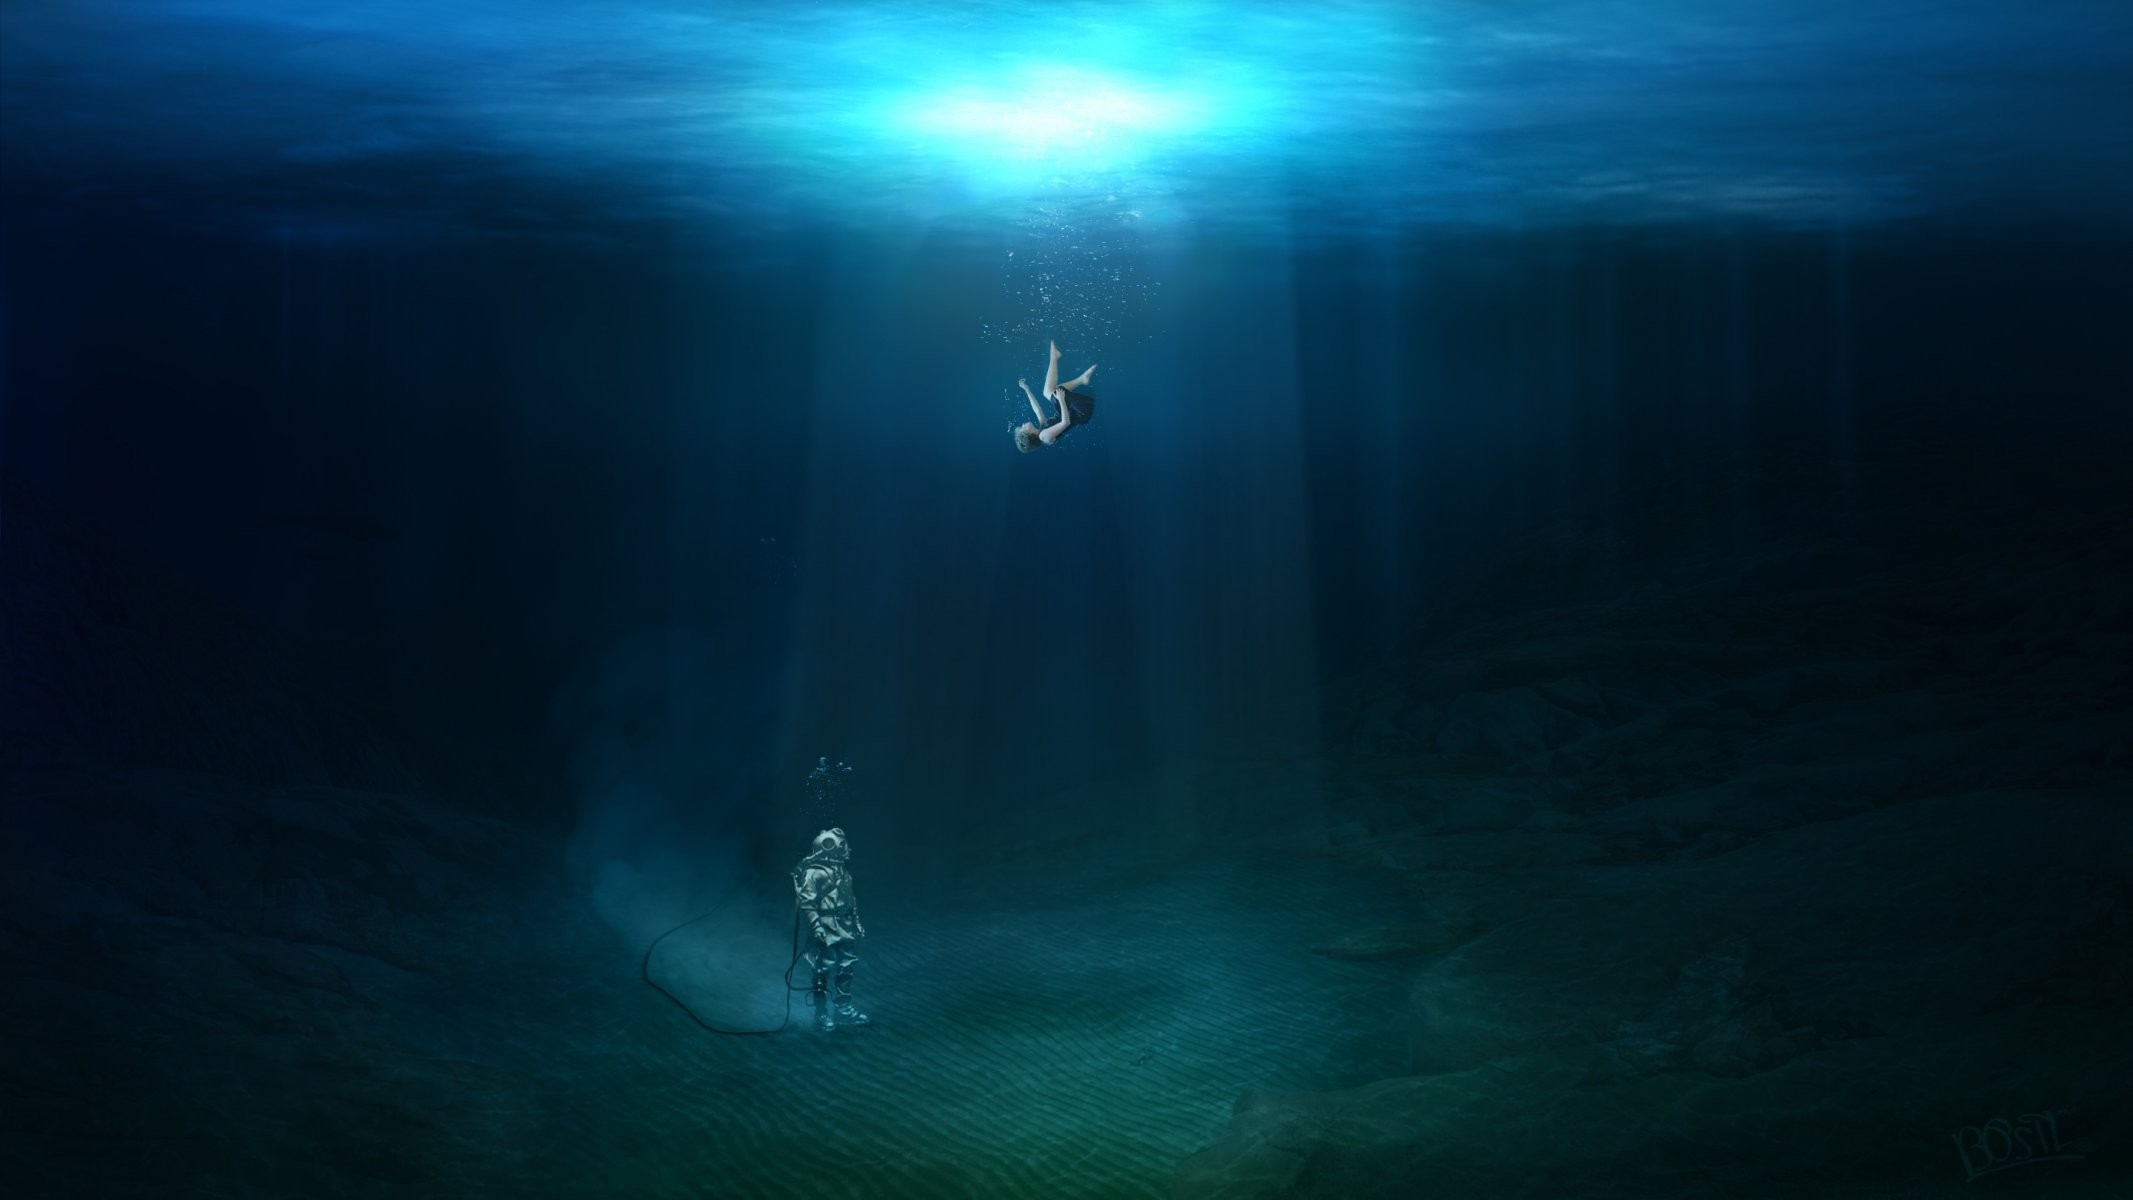 feel like falling commercial diving photoshop girl water ocean air waves hd water  girl diver the